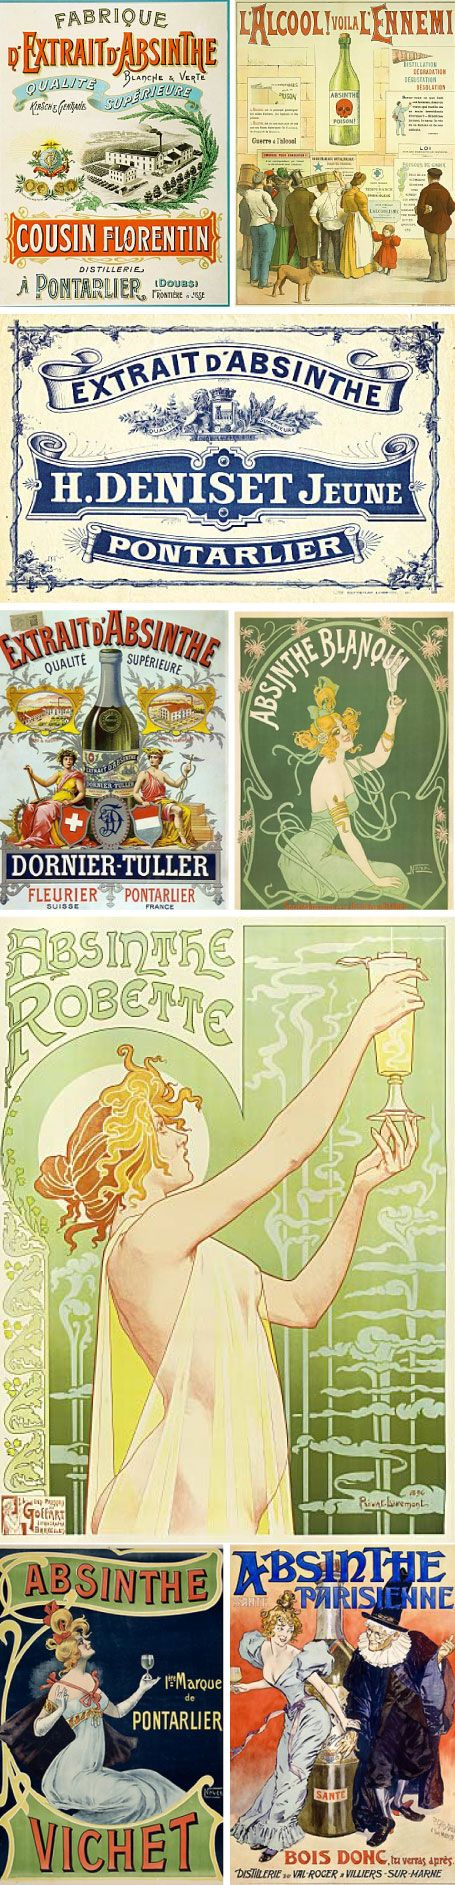 absinthe labels